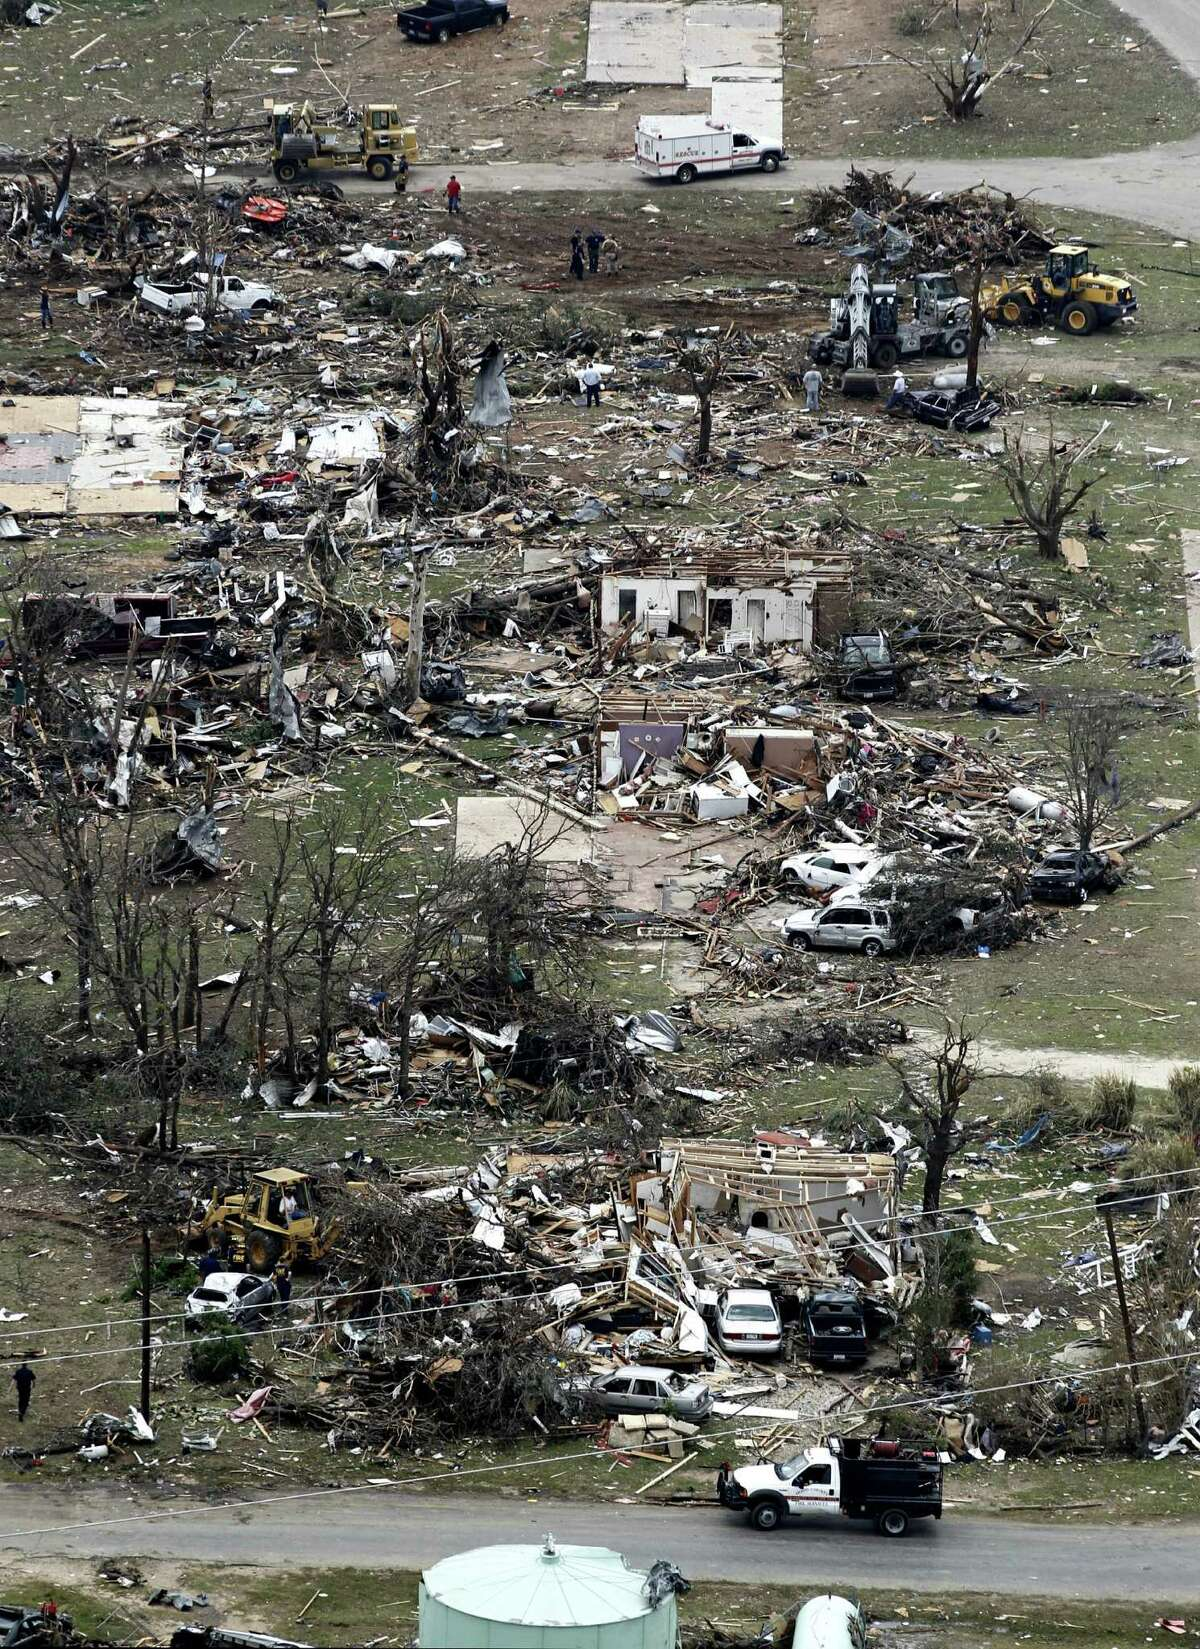 Ten tornadoes touched down in several small communities, including Granbury, in North Texas on Wednesday night, leaving at least six people dead.